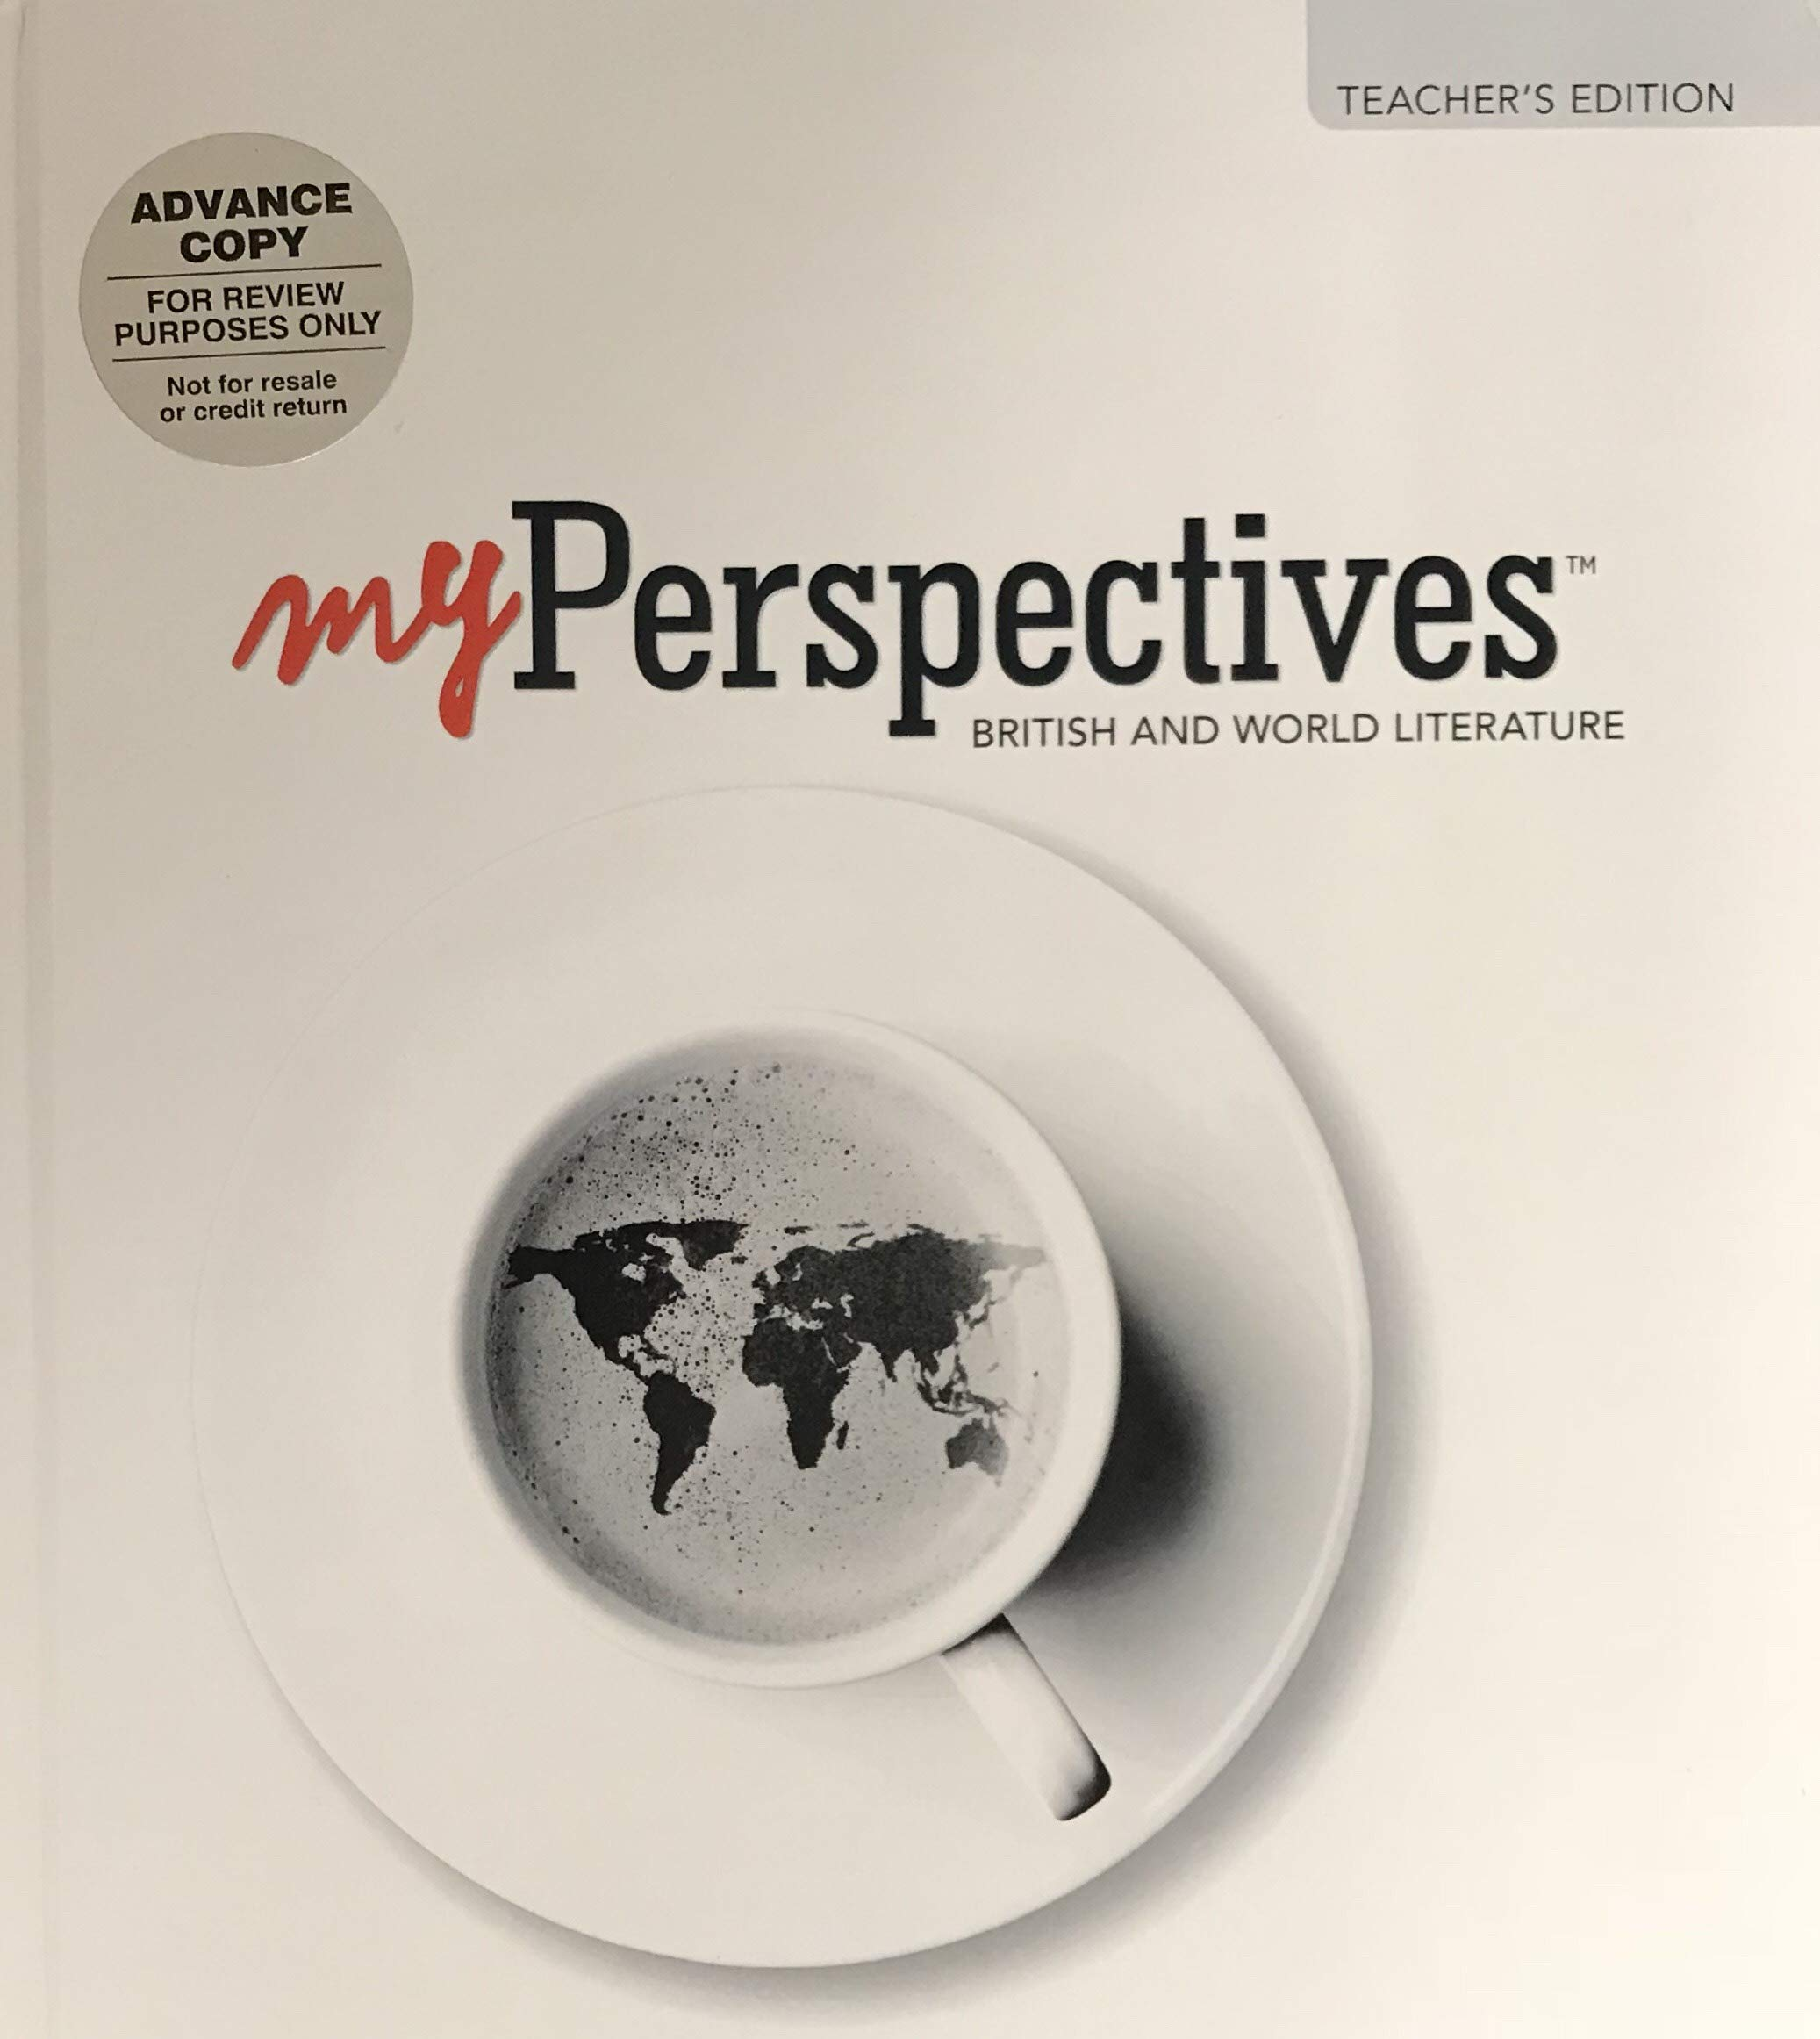 My Perspectives: British and World Literature, Teacher's Edition, Grade 12, Units 1-6, 9780133338713, 0133338711, 2017 PDF